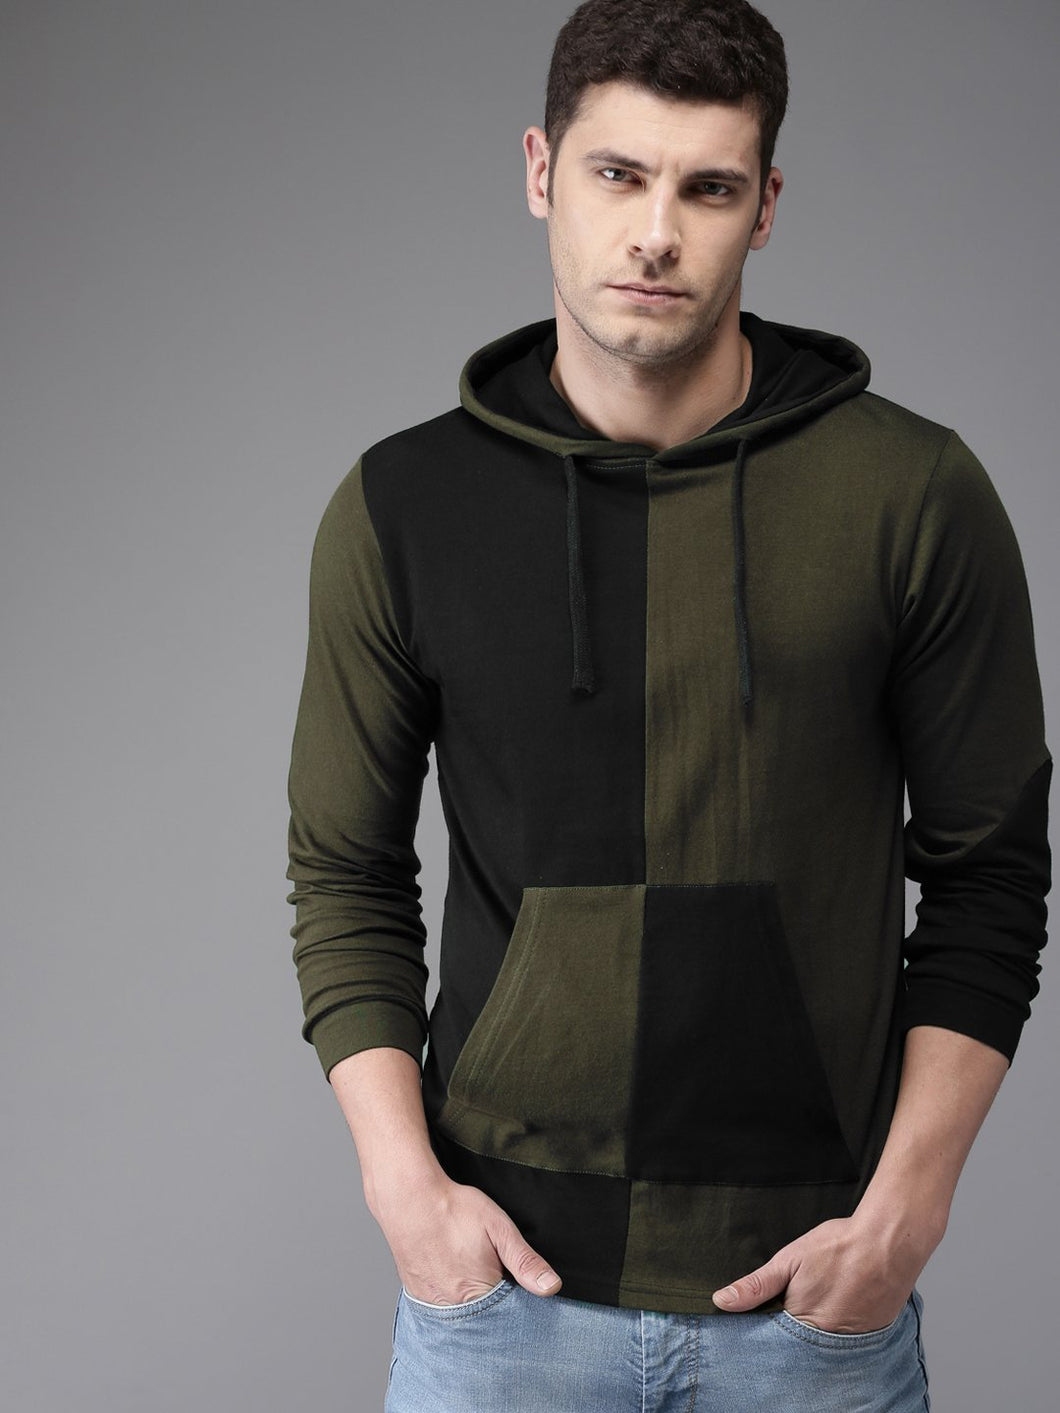 Olive black Panel premium Hooded Tee PRICE: Rs. 549 | Book for Rs. 31 only